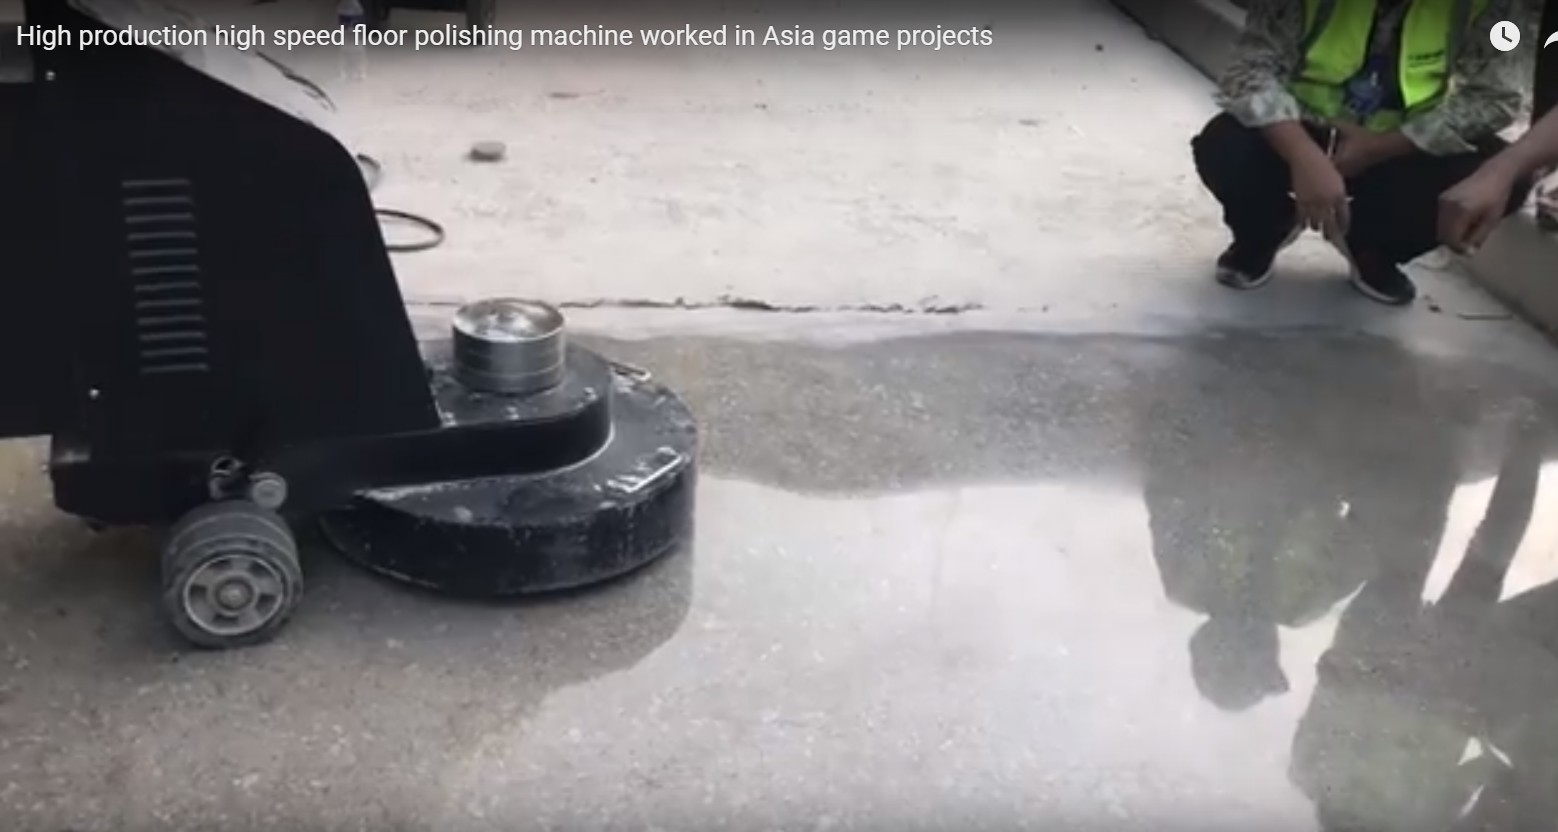 high product high speed floor polishing machine wroking